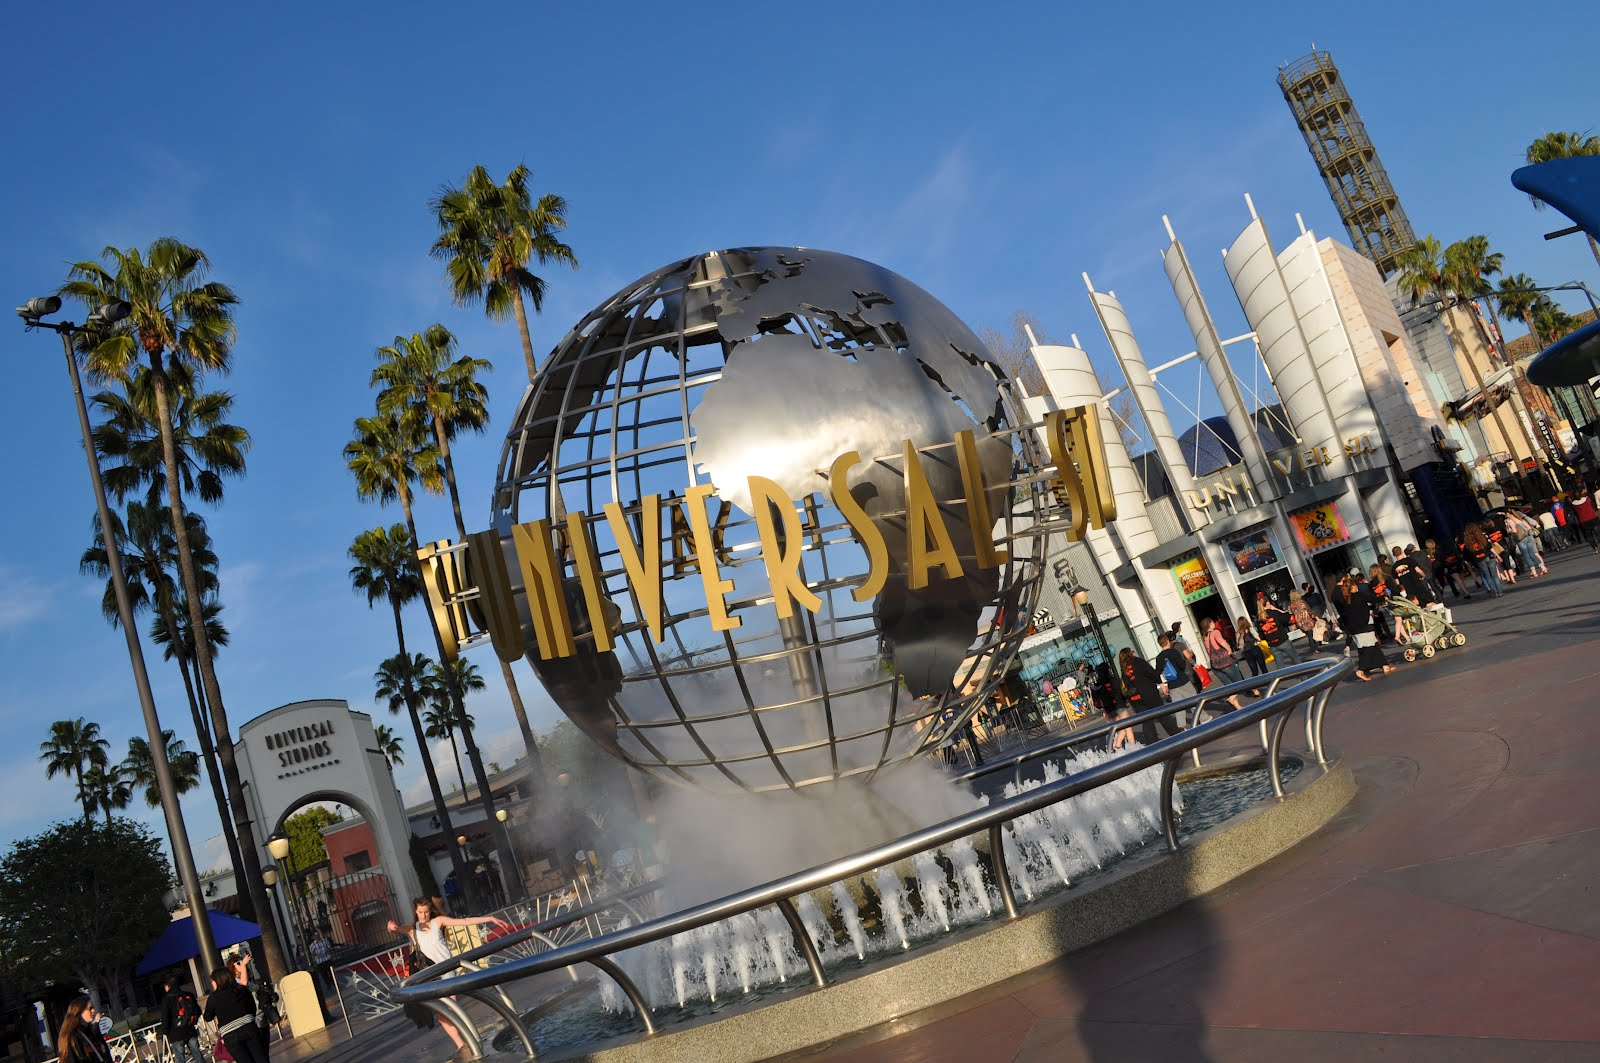 hollywood california map with Universal Mediterranea on desertpalmshotel as well 3124241249 additionally 5 Reasons Must Visit Coastal Northern California together with Krusty Burger And Moes Tavern Now Open At Universal Studios Hollywood further Viewtopic.